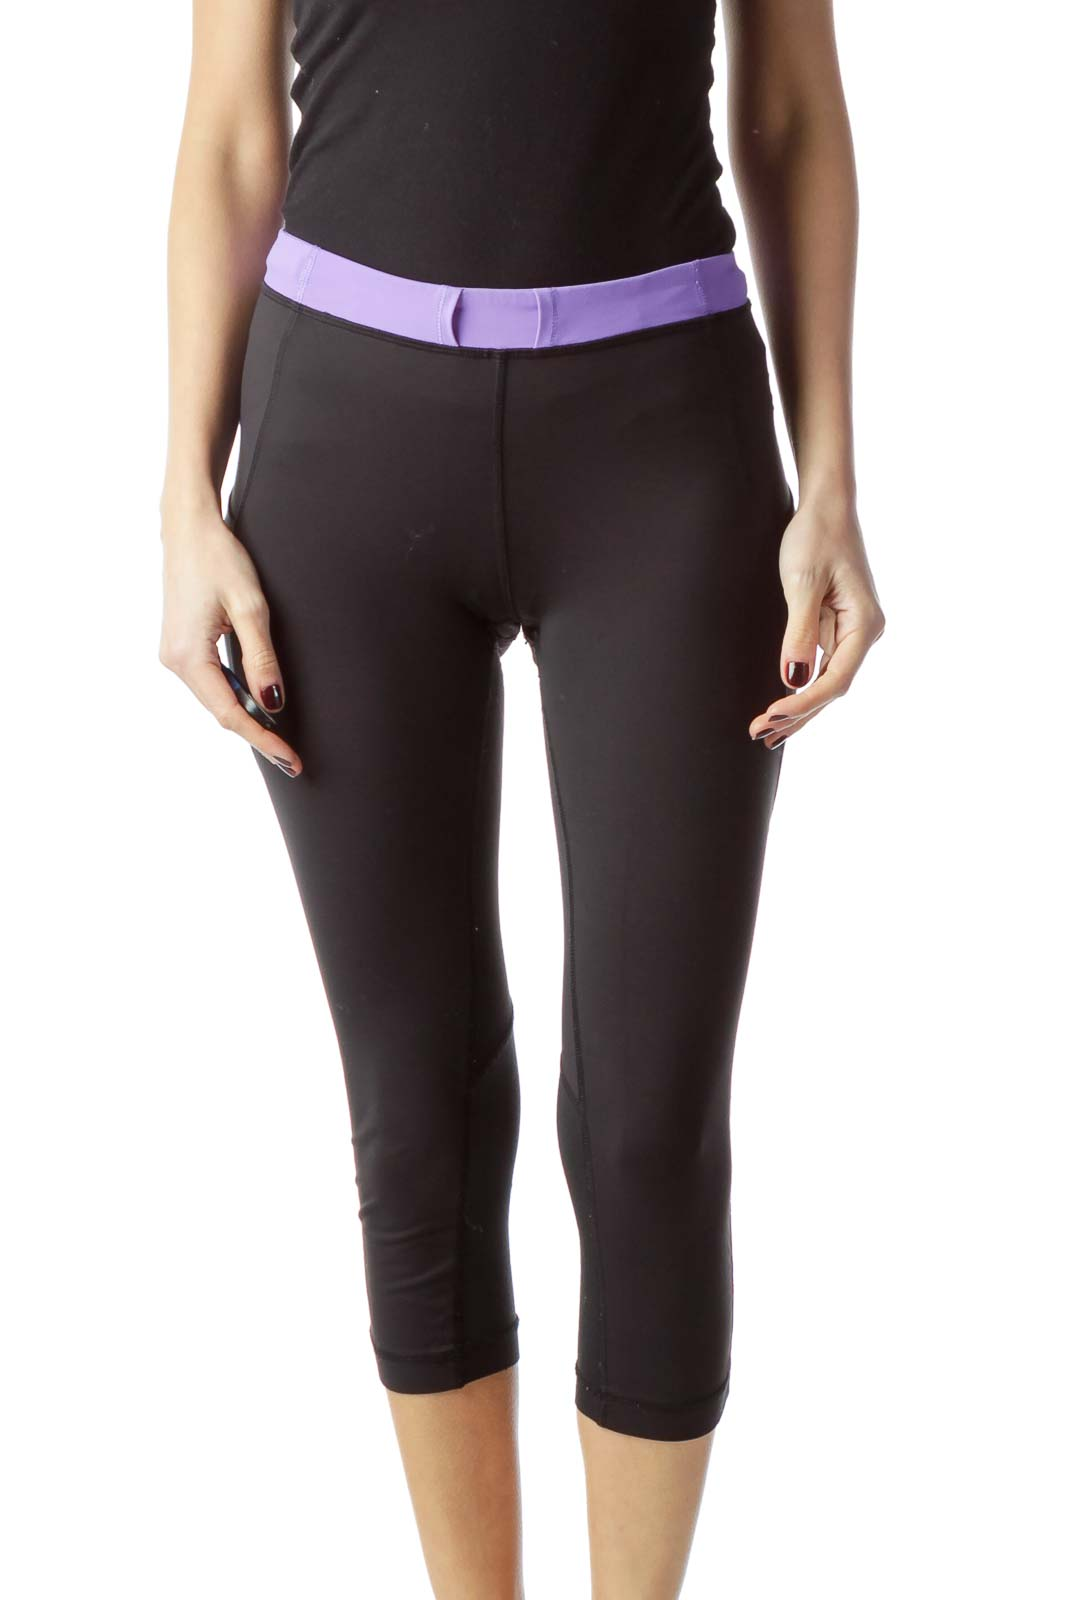 Black Purple Waistband Cropped Sports Pants